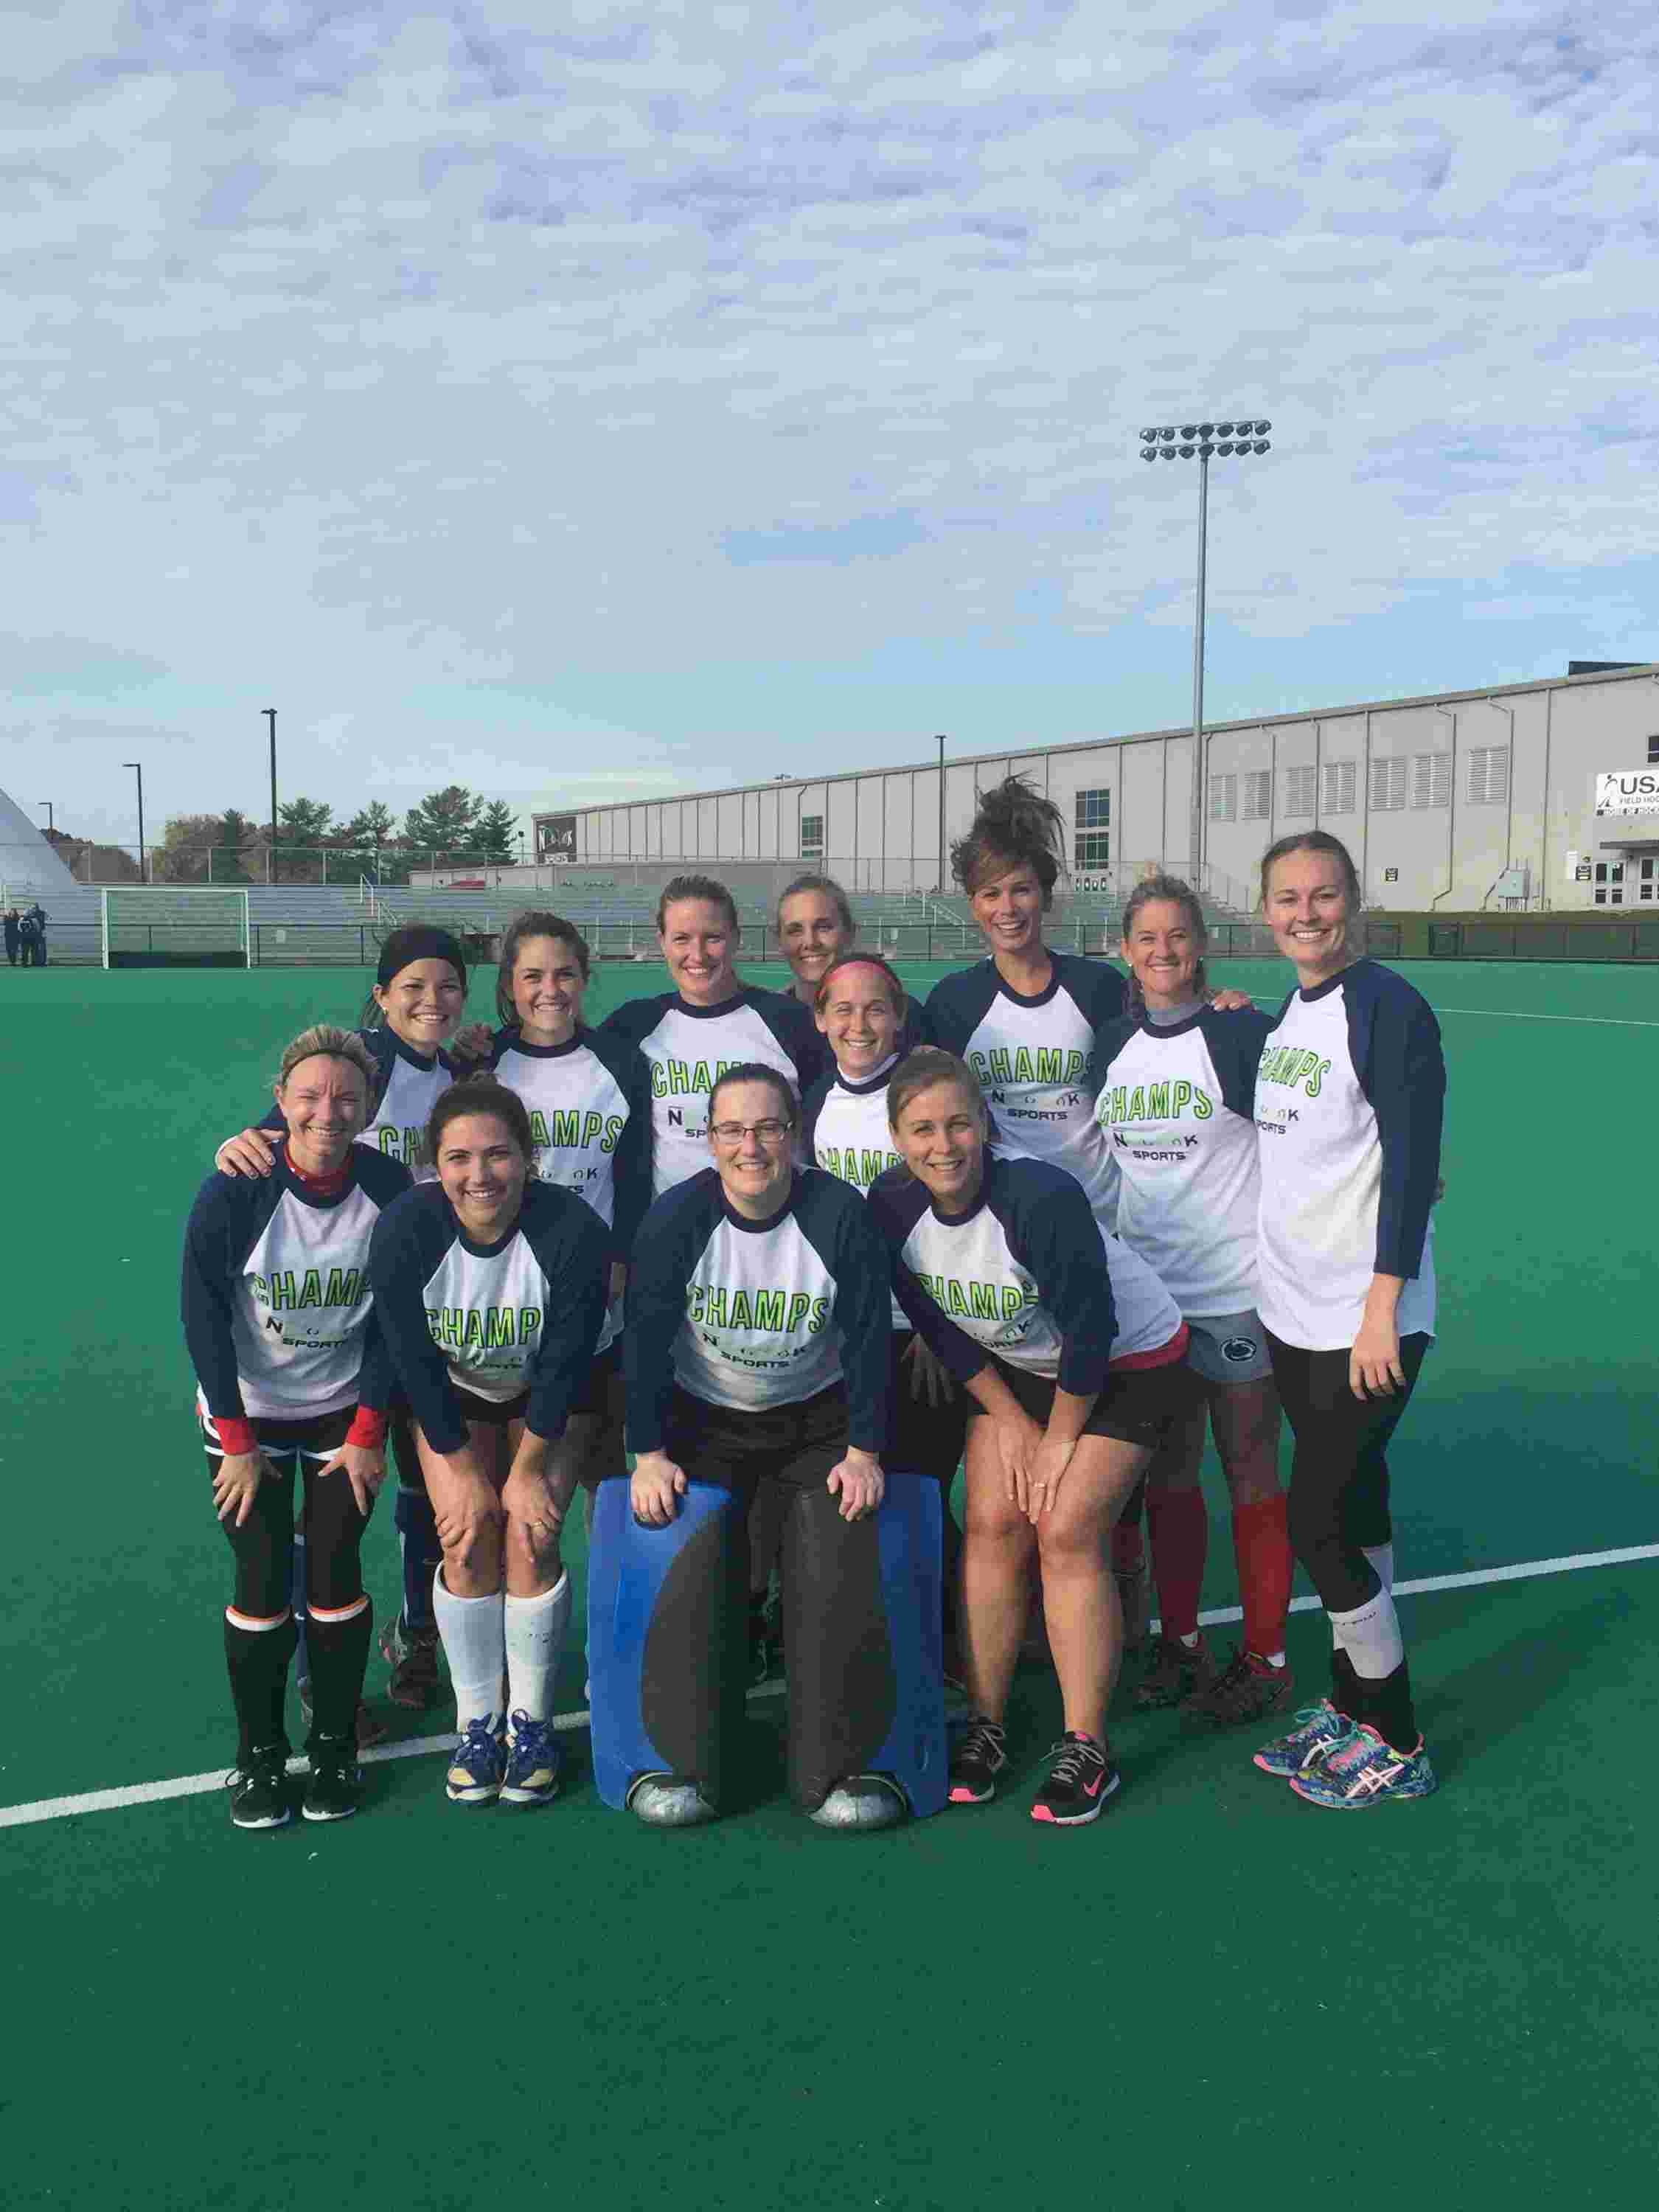 Field Hockey in Manheim, PA